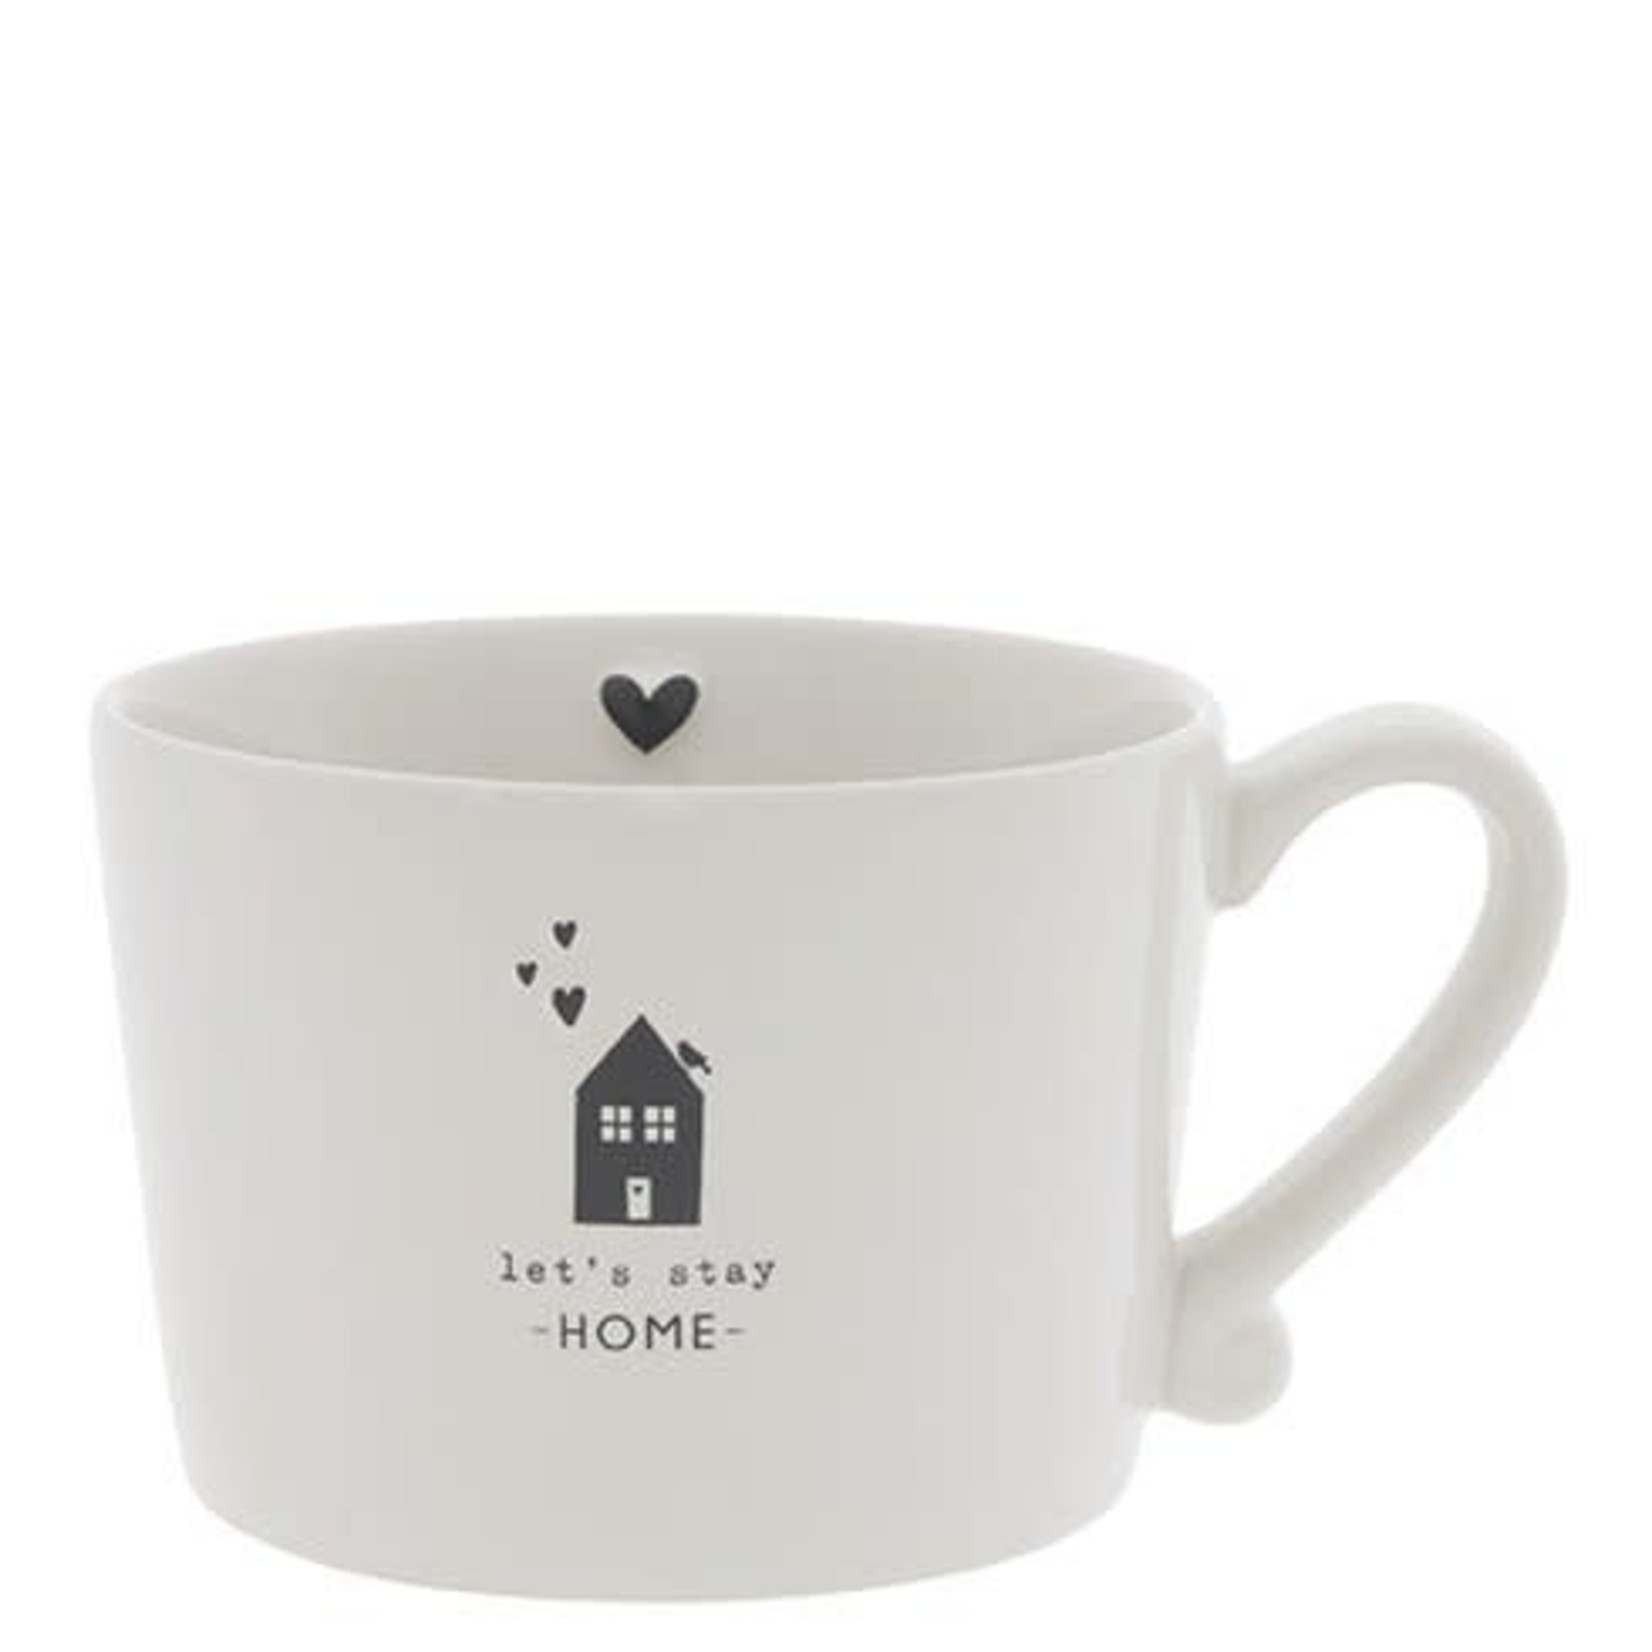 Bastion Collections Cup large White Let's Stay Home in Black